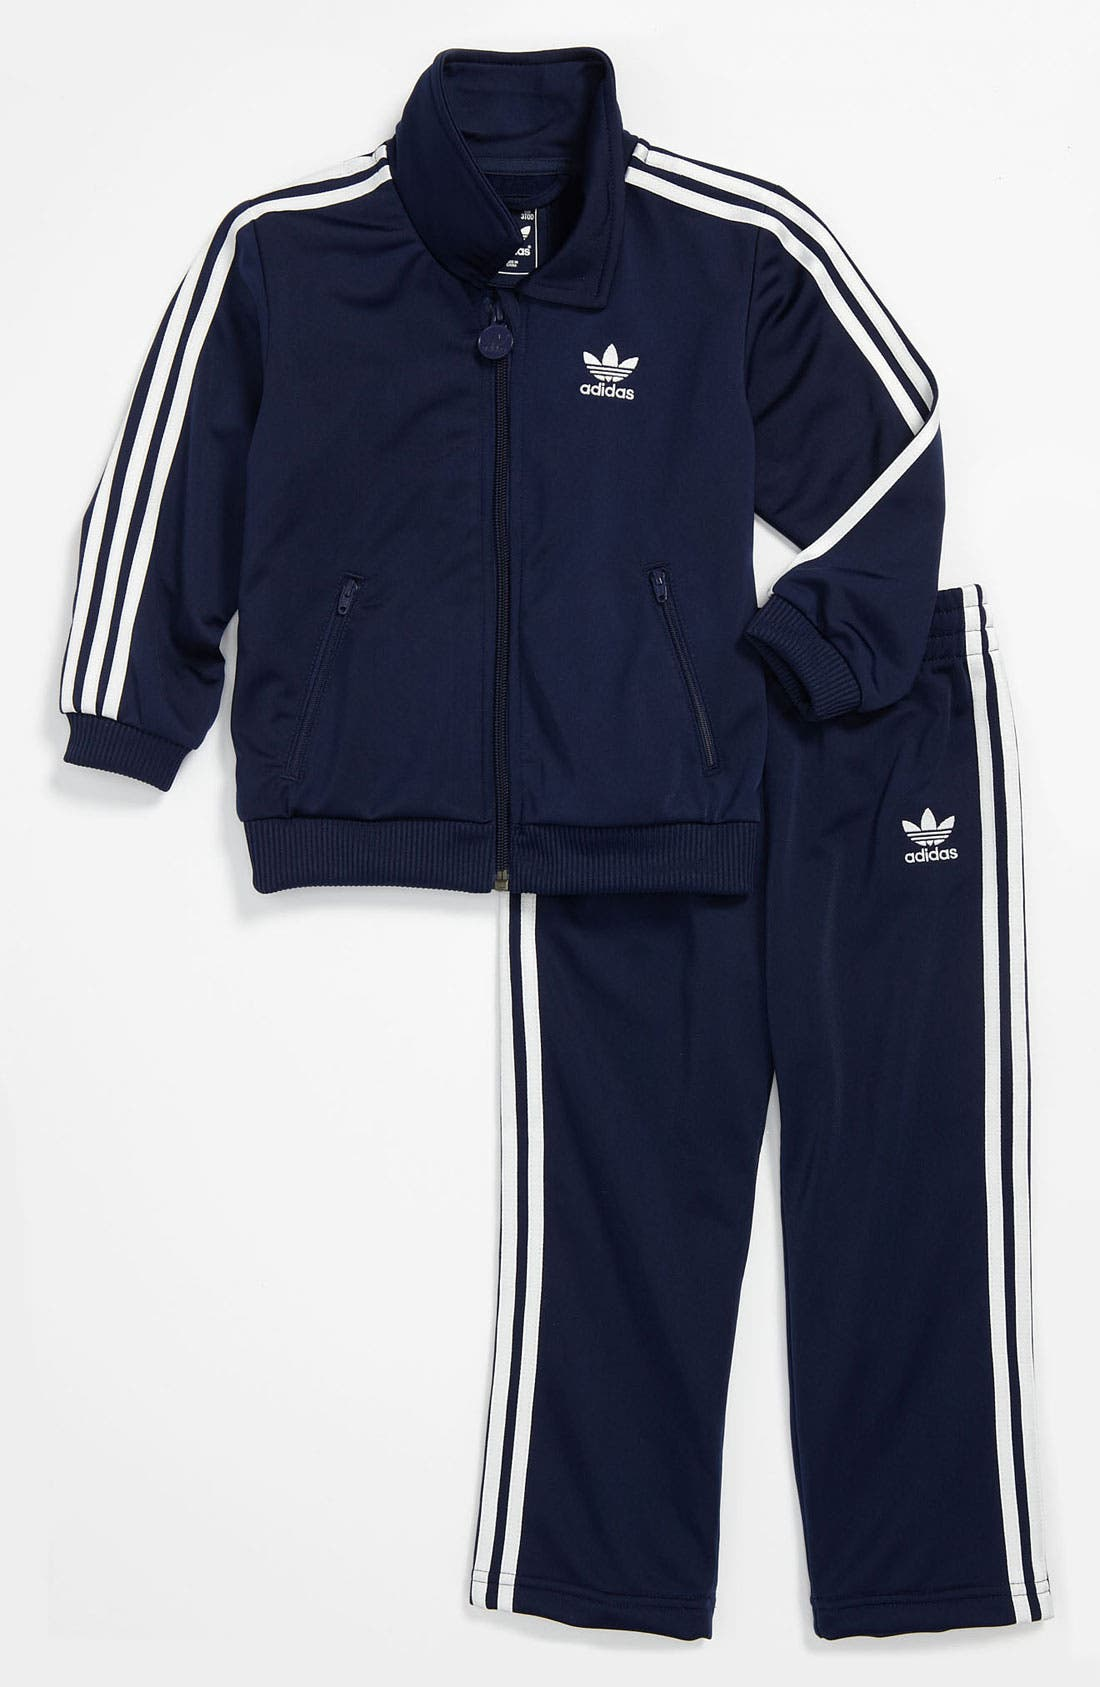 Main Image - adidas 'Firebird' Jacket & Pants (Infant)